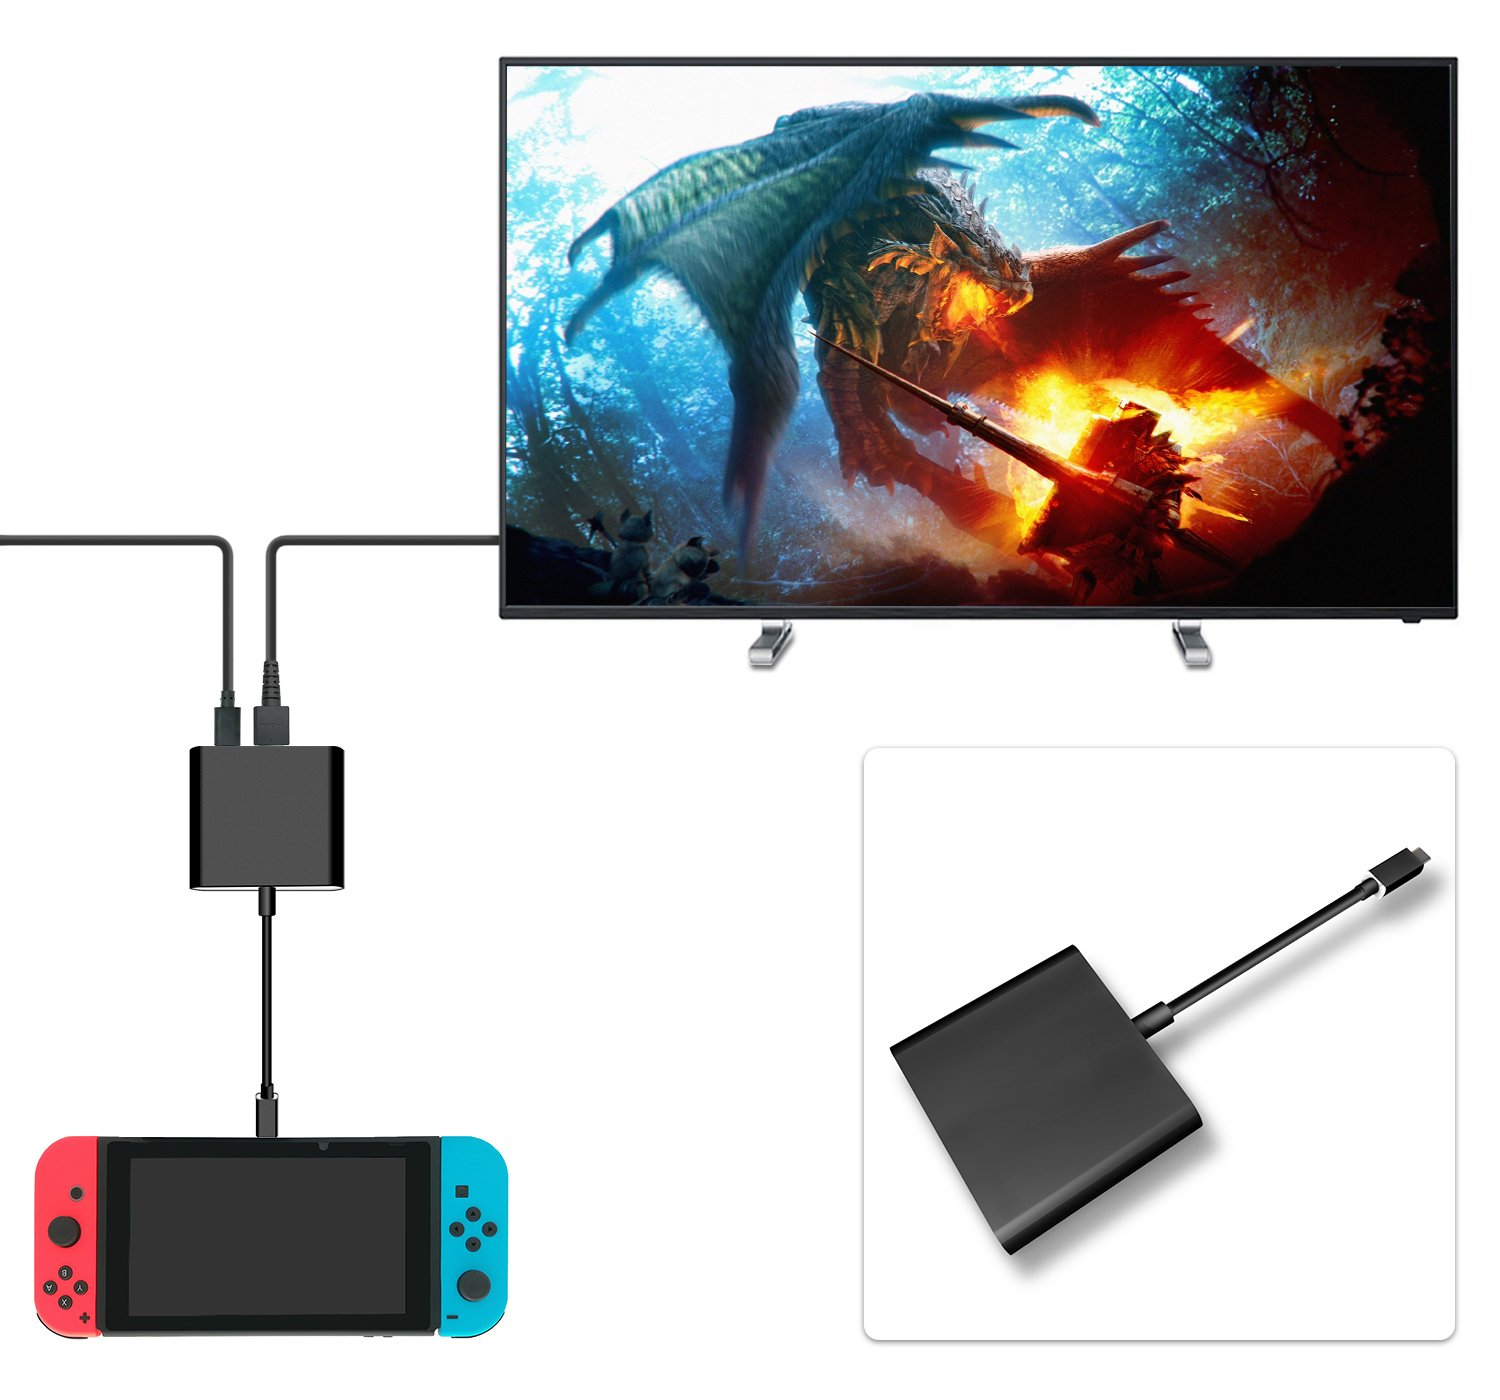 Fastsnail Hdmi Type C Hub Adapter For Nintendo Switch 3 Way Made Easy Converter Dock Cable Black Computers Accessories